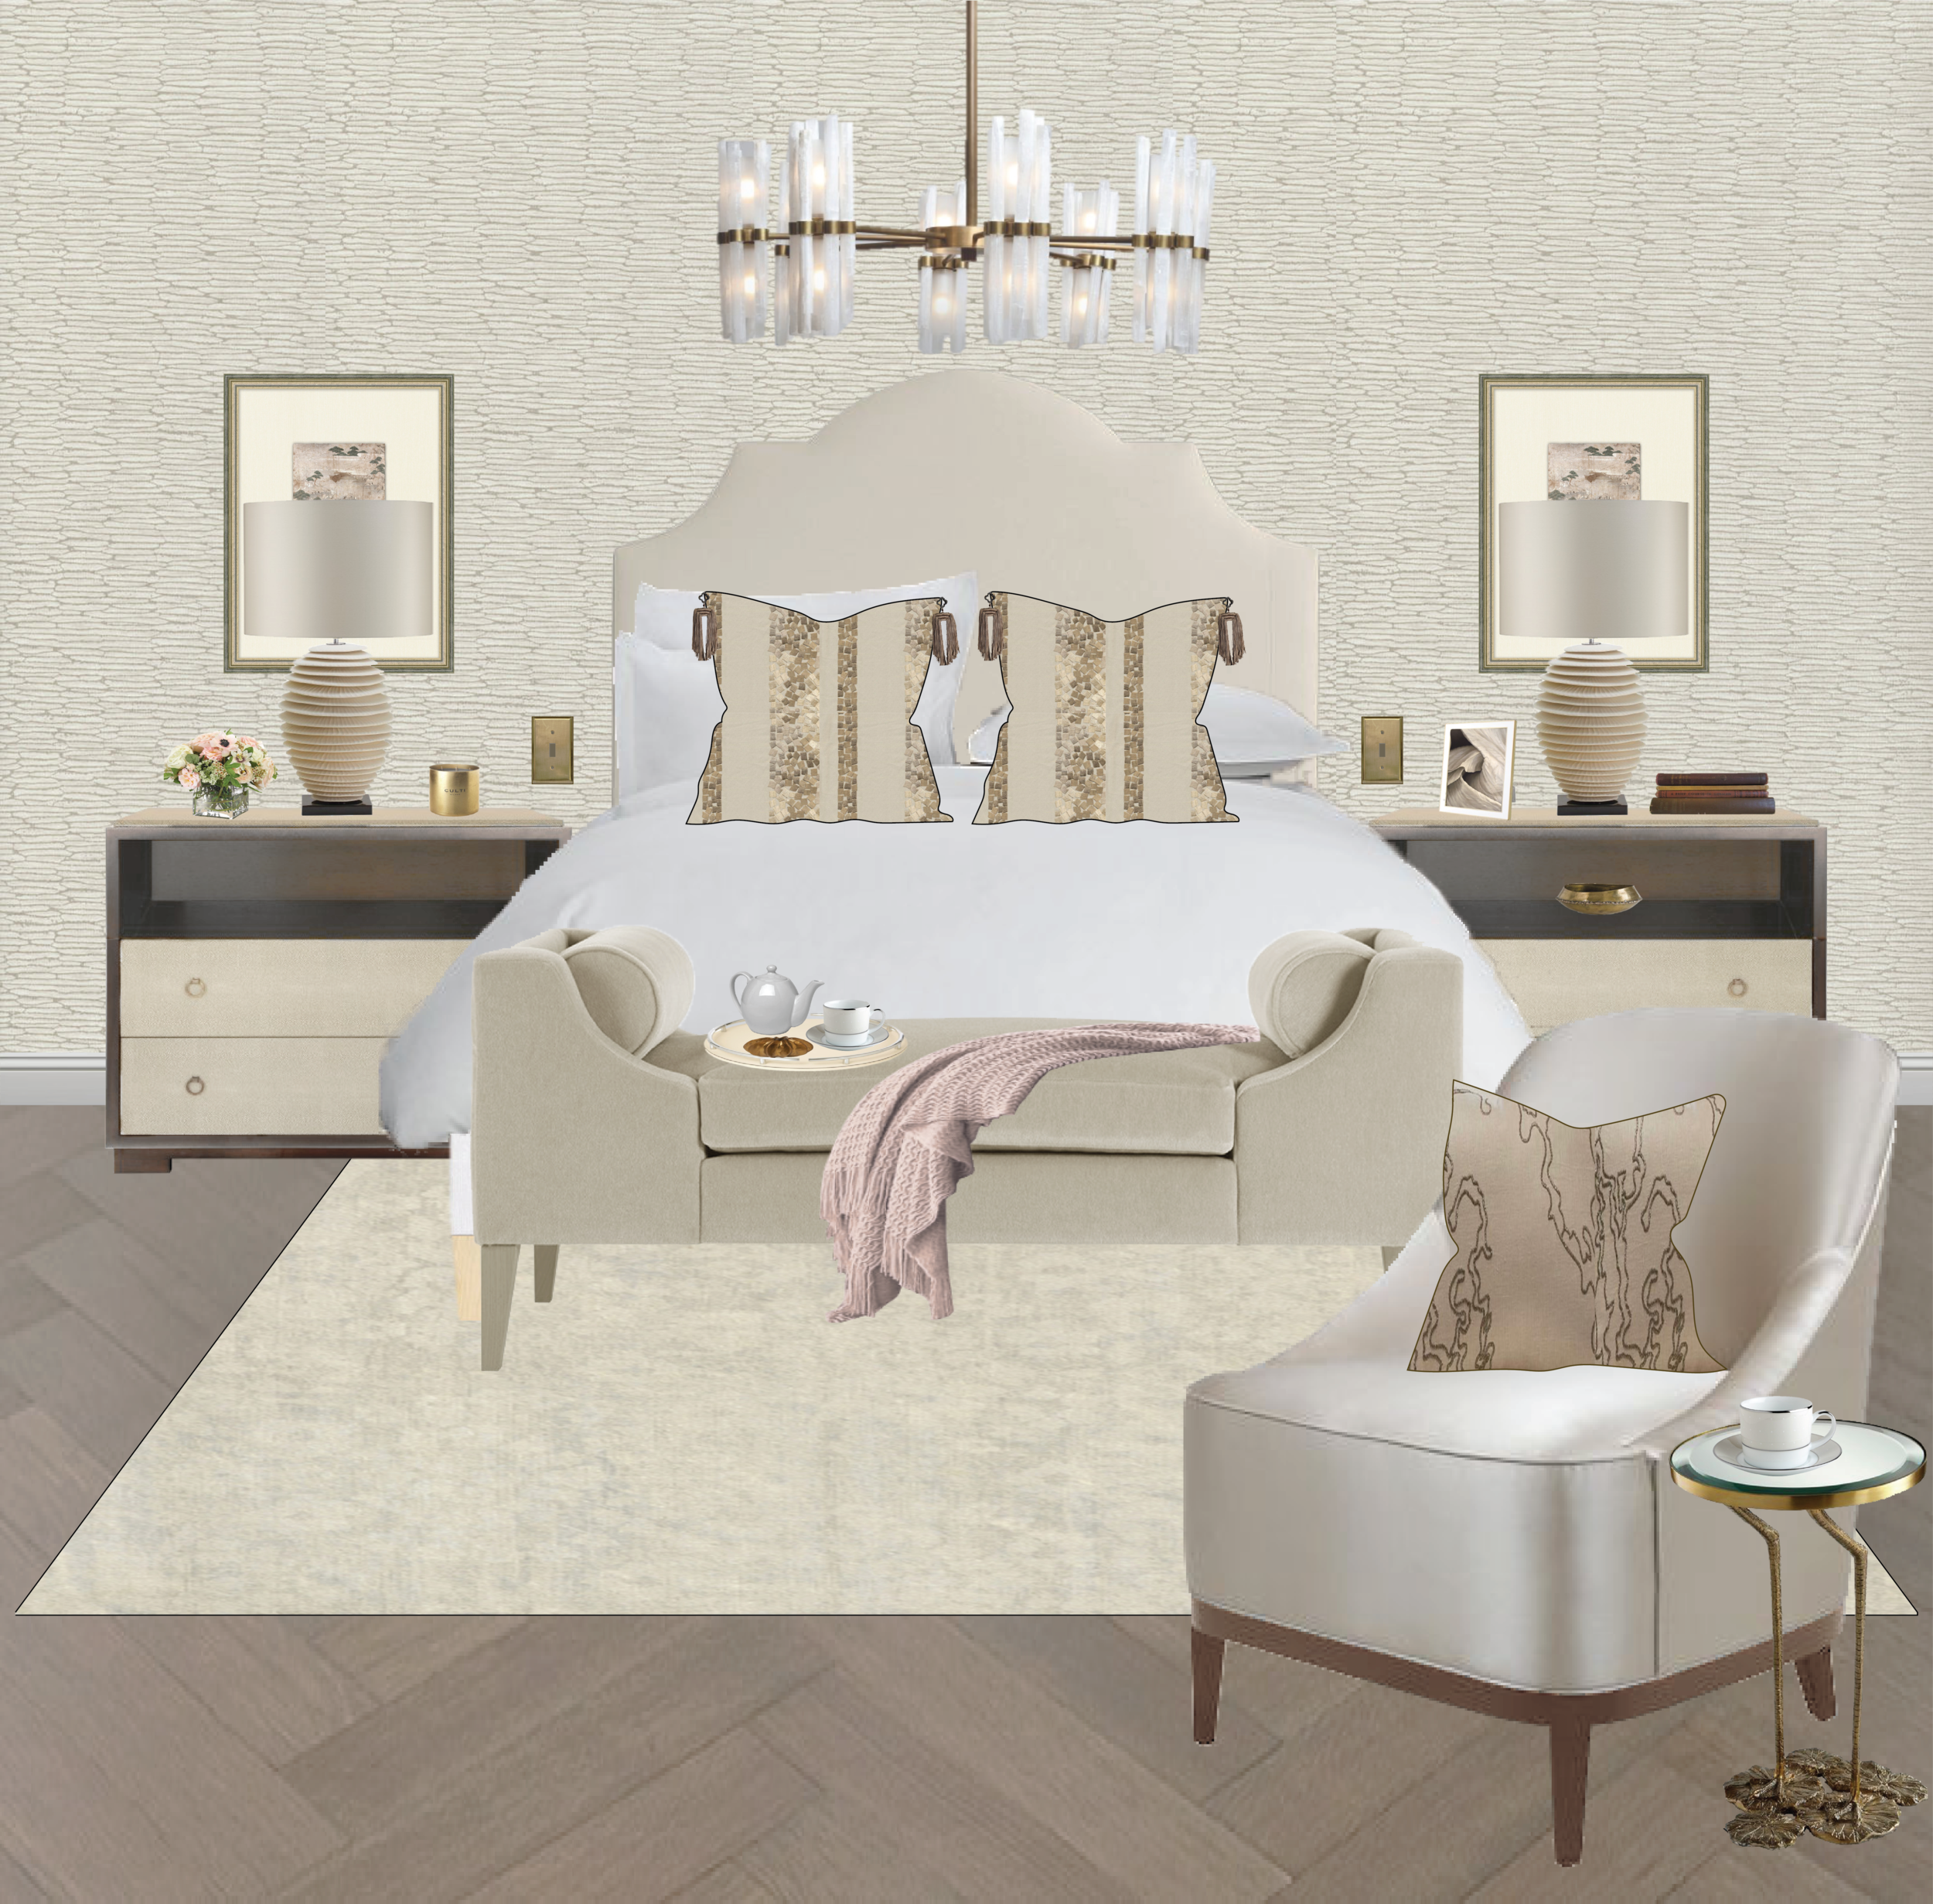 Opulent Master Bedroom   A champagne, gold, taupe and dusty pink color palette was utilized for an exquisite retreat with subtle cues from nature seeing in the patterns and textures throughout.